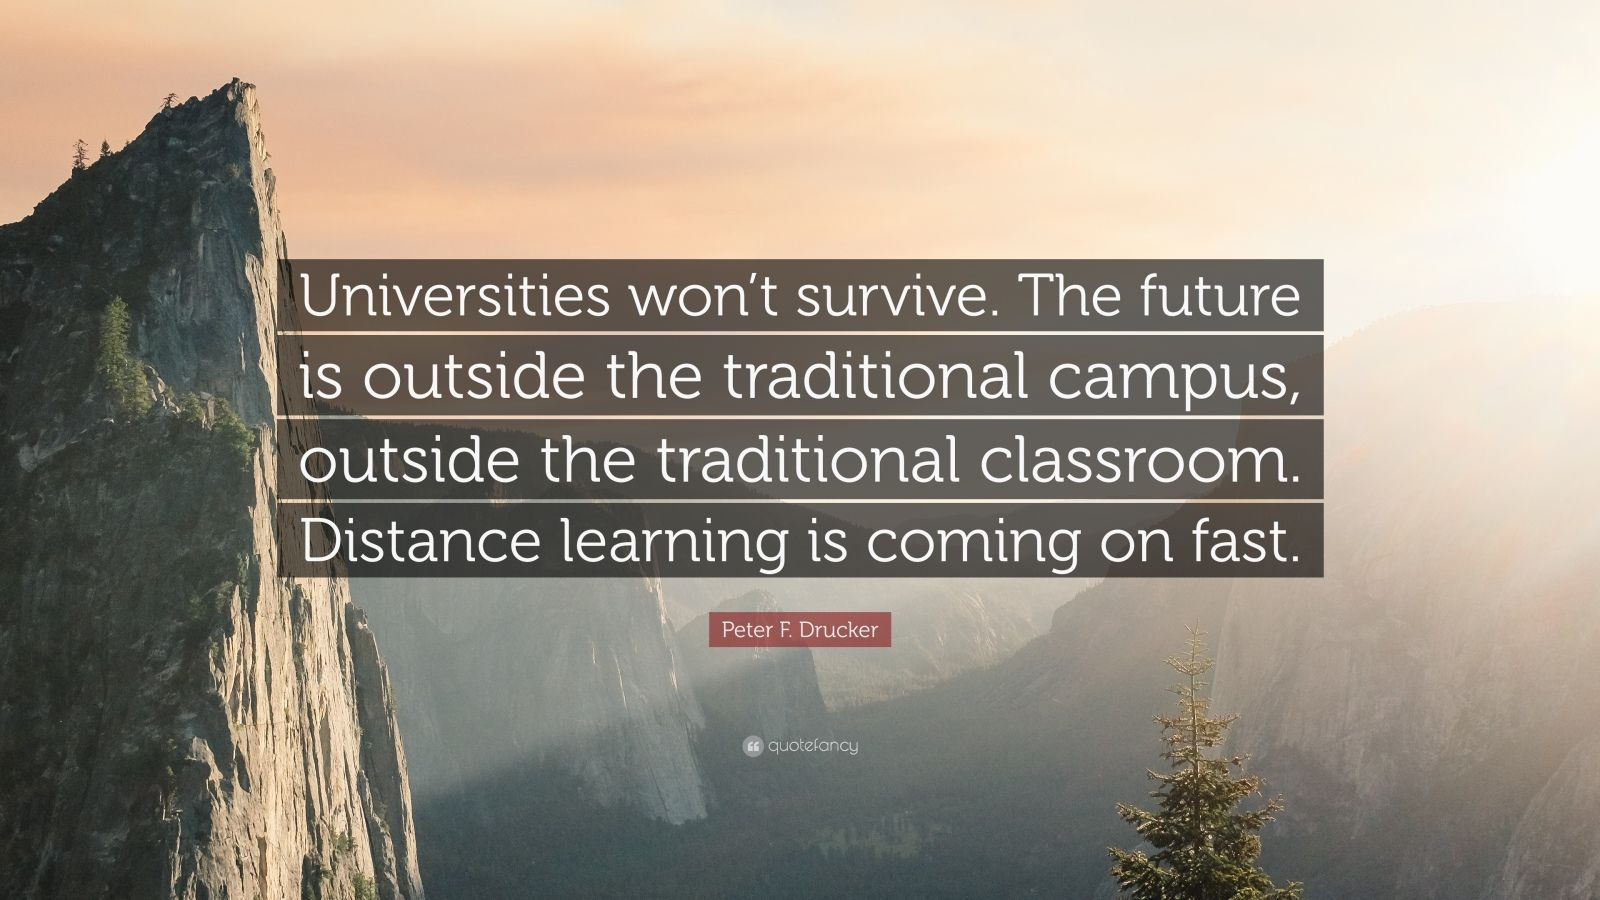 """Peter F. Drucker Quote: """"Universities won't survive. The future is outside the traditional campus, outside the traditional classroom. Distance learning is coming on fast."""""""